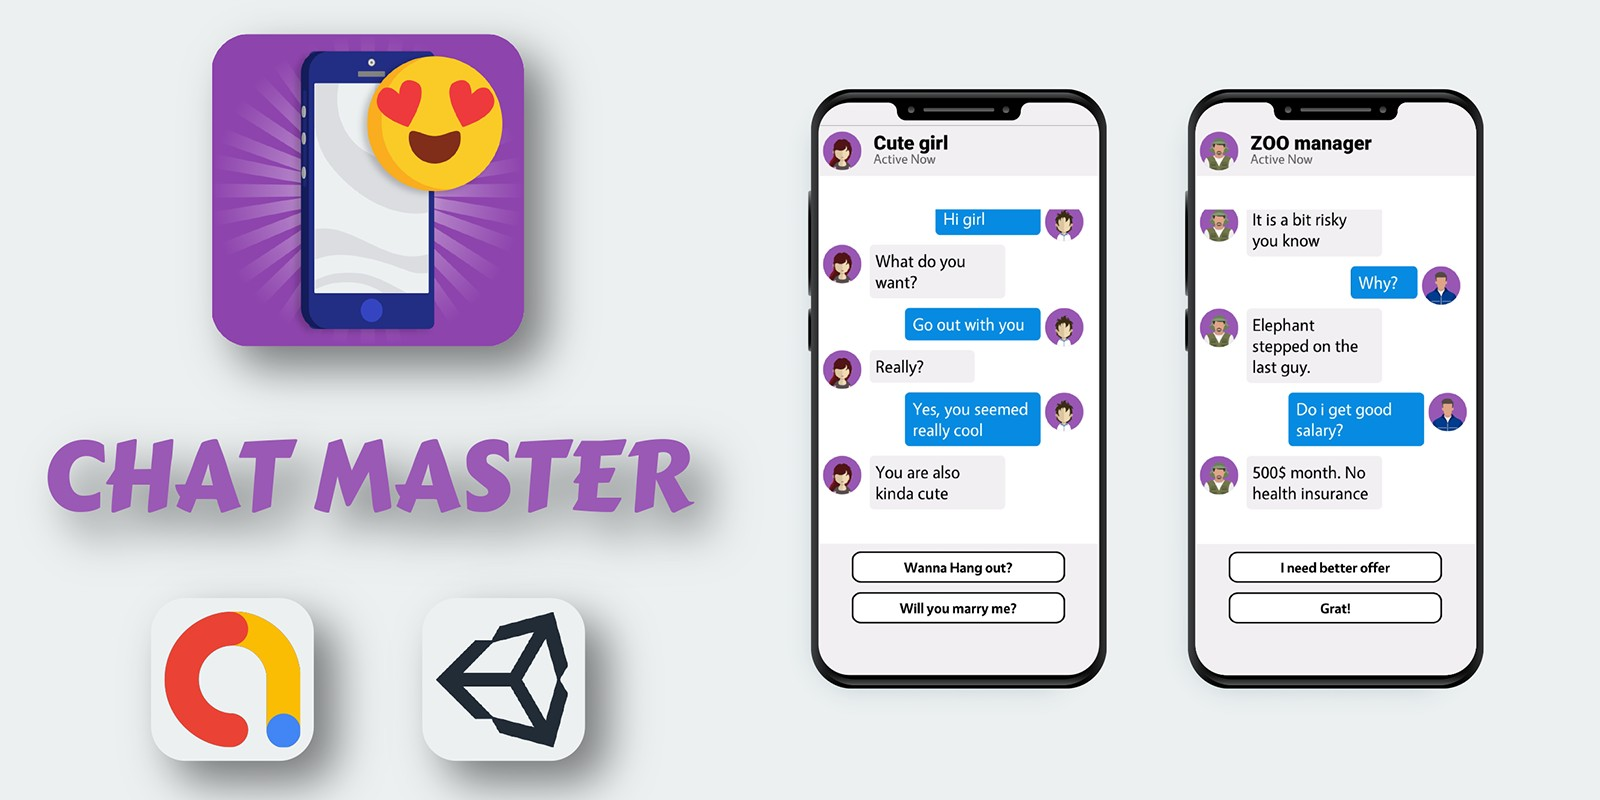 Chats Master - Unity Source Code